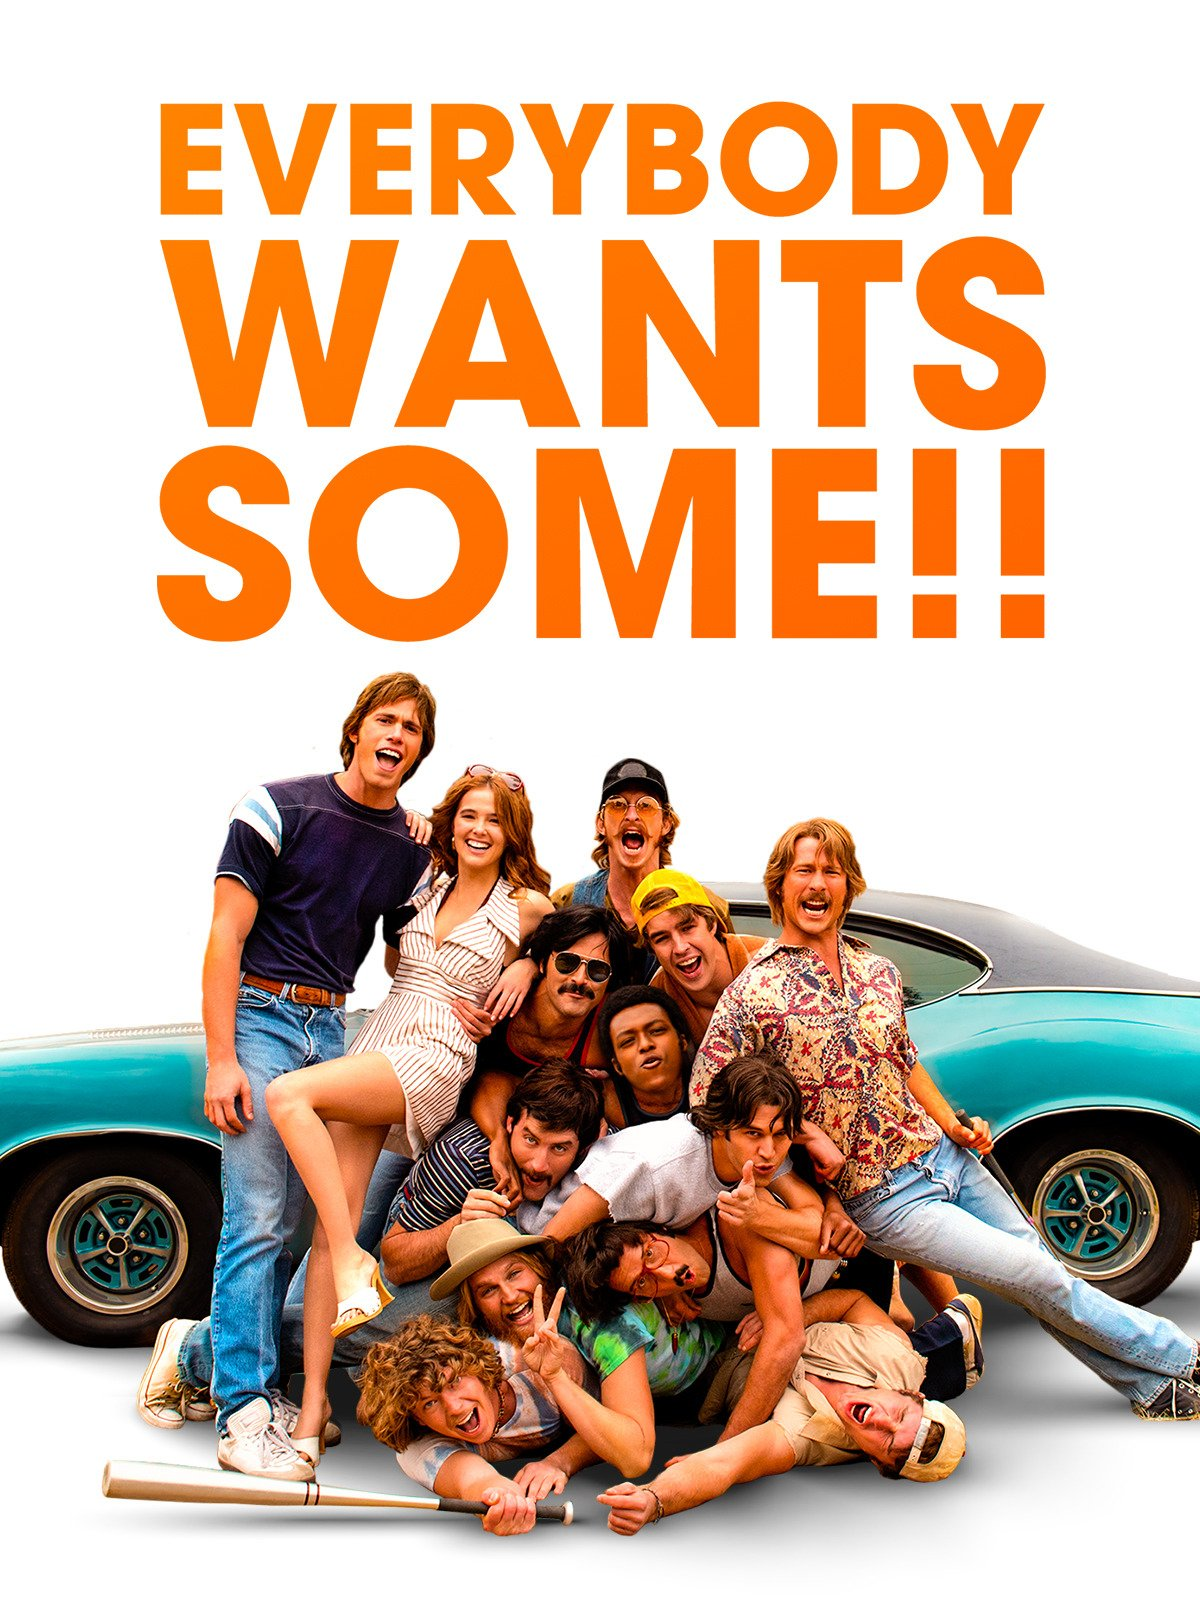 Everybody Wants Some!! (2016) - Directed by: Richard LinklaterStarring: Blake Jenner, Tyler Hoechlin, Ryan GuzmanRated: RRunning Time: 1h 57mTMM Score: 4 StarsSTRENGTHS: Nostalgia, Music, CharactersWEAKNESSES: Very Slightly Too Long